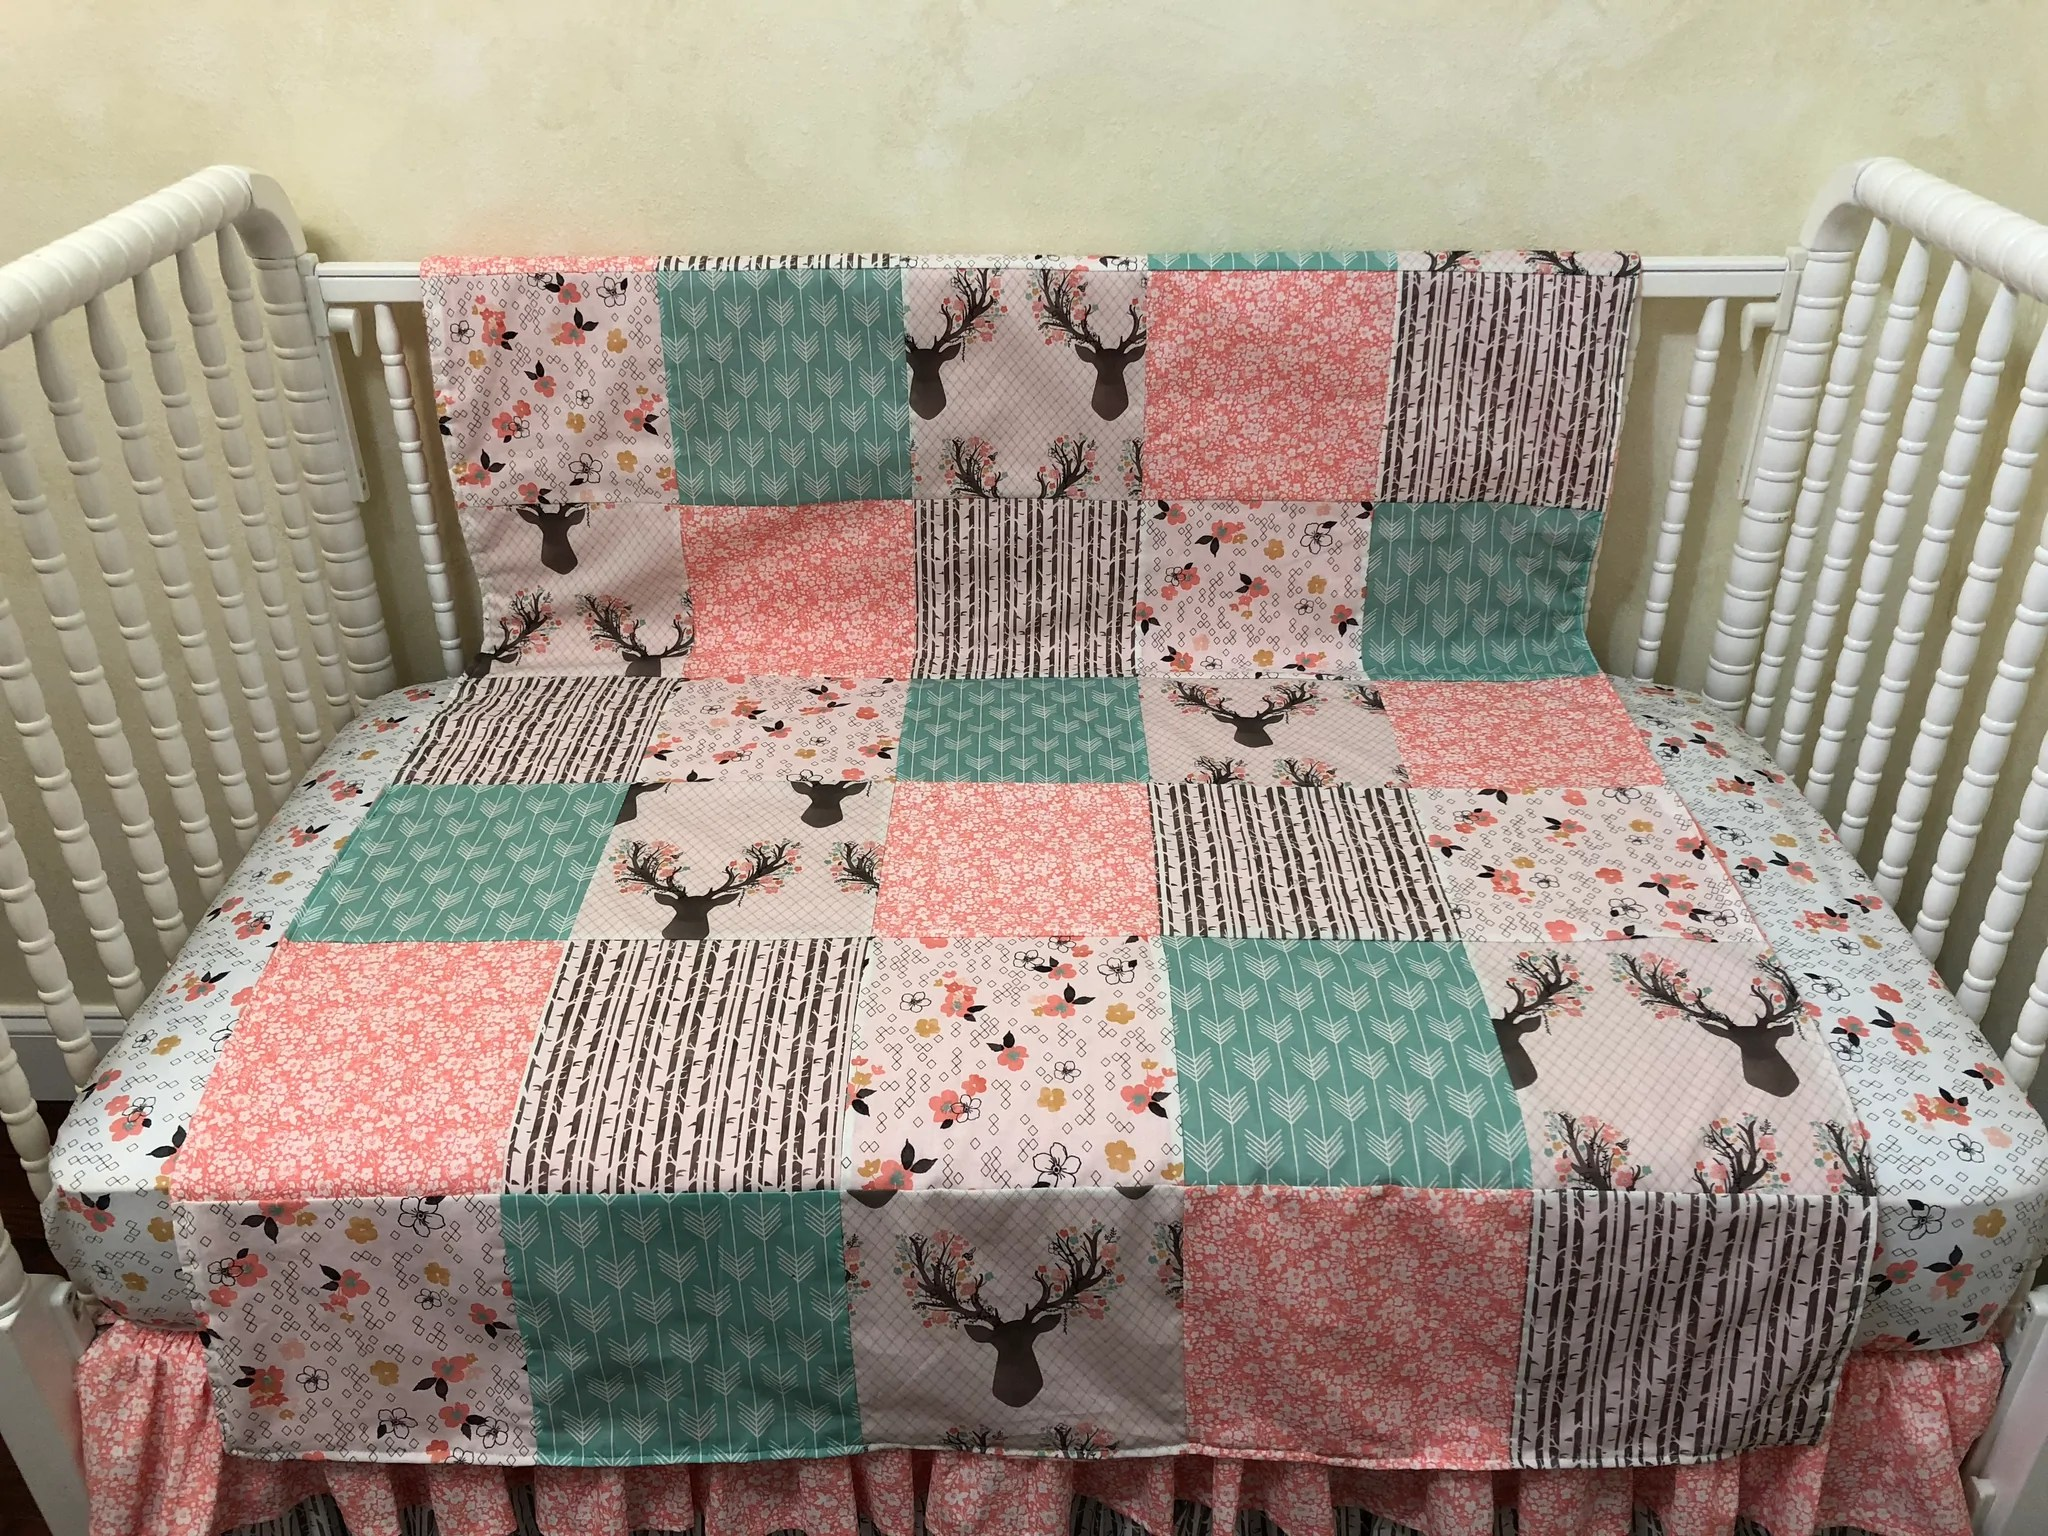 Patchwork Set Baby Baby Girl Woodland Deer Patchwork Baby Blanket In Coral And Mint